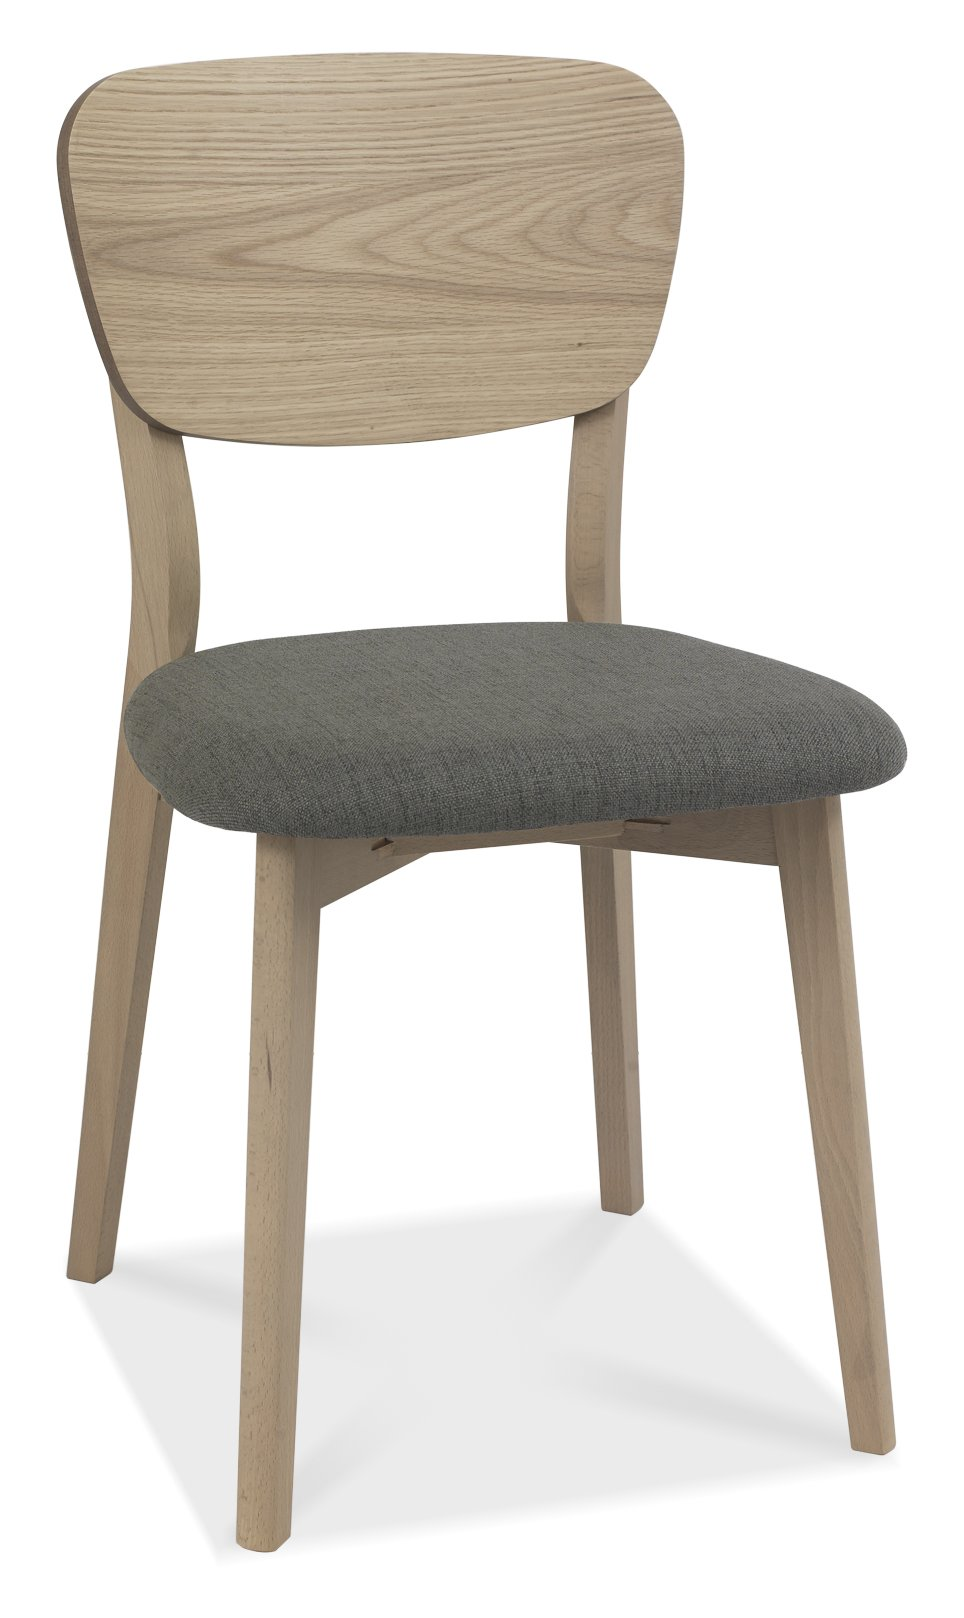 RETRO WOODEN DINING CHAIR. - ANGLE DETAIL